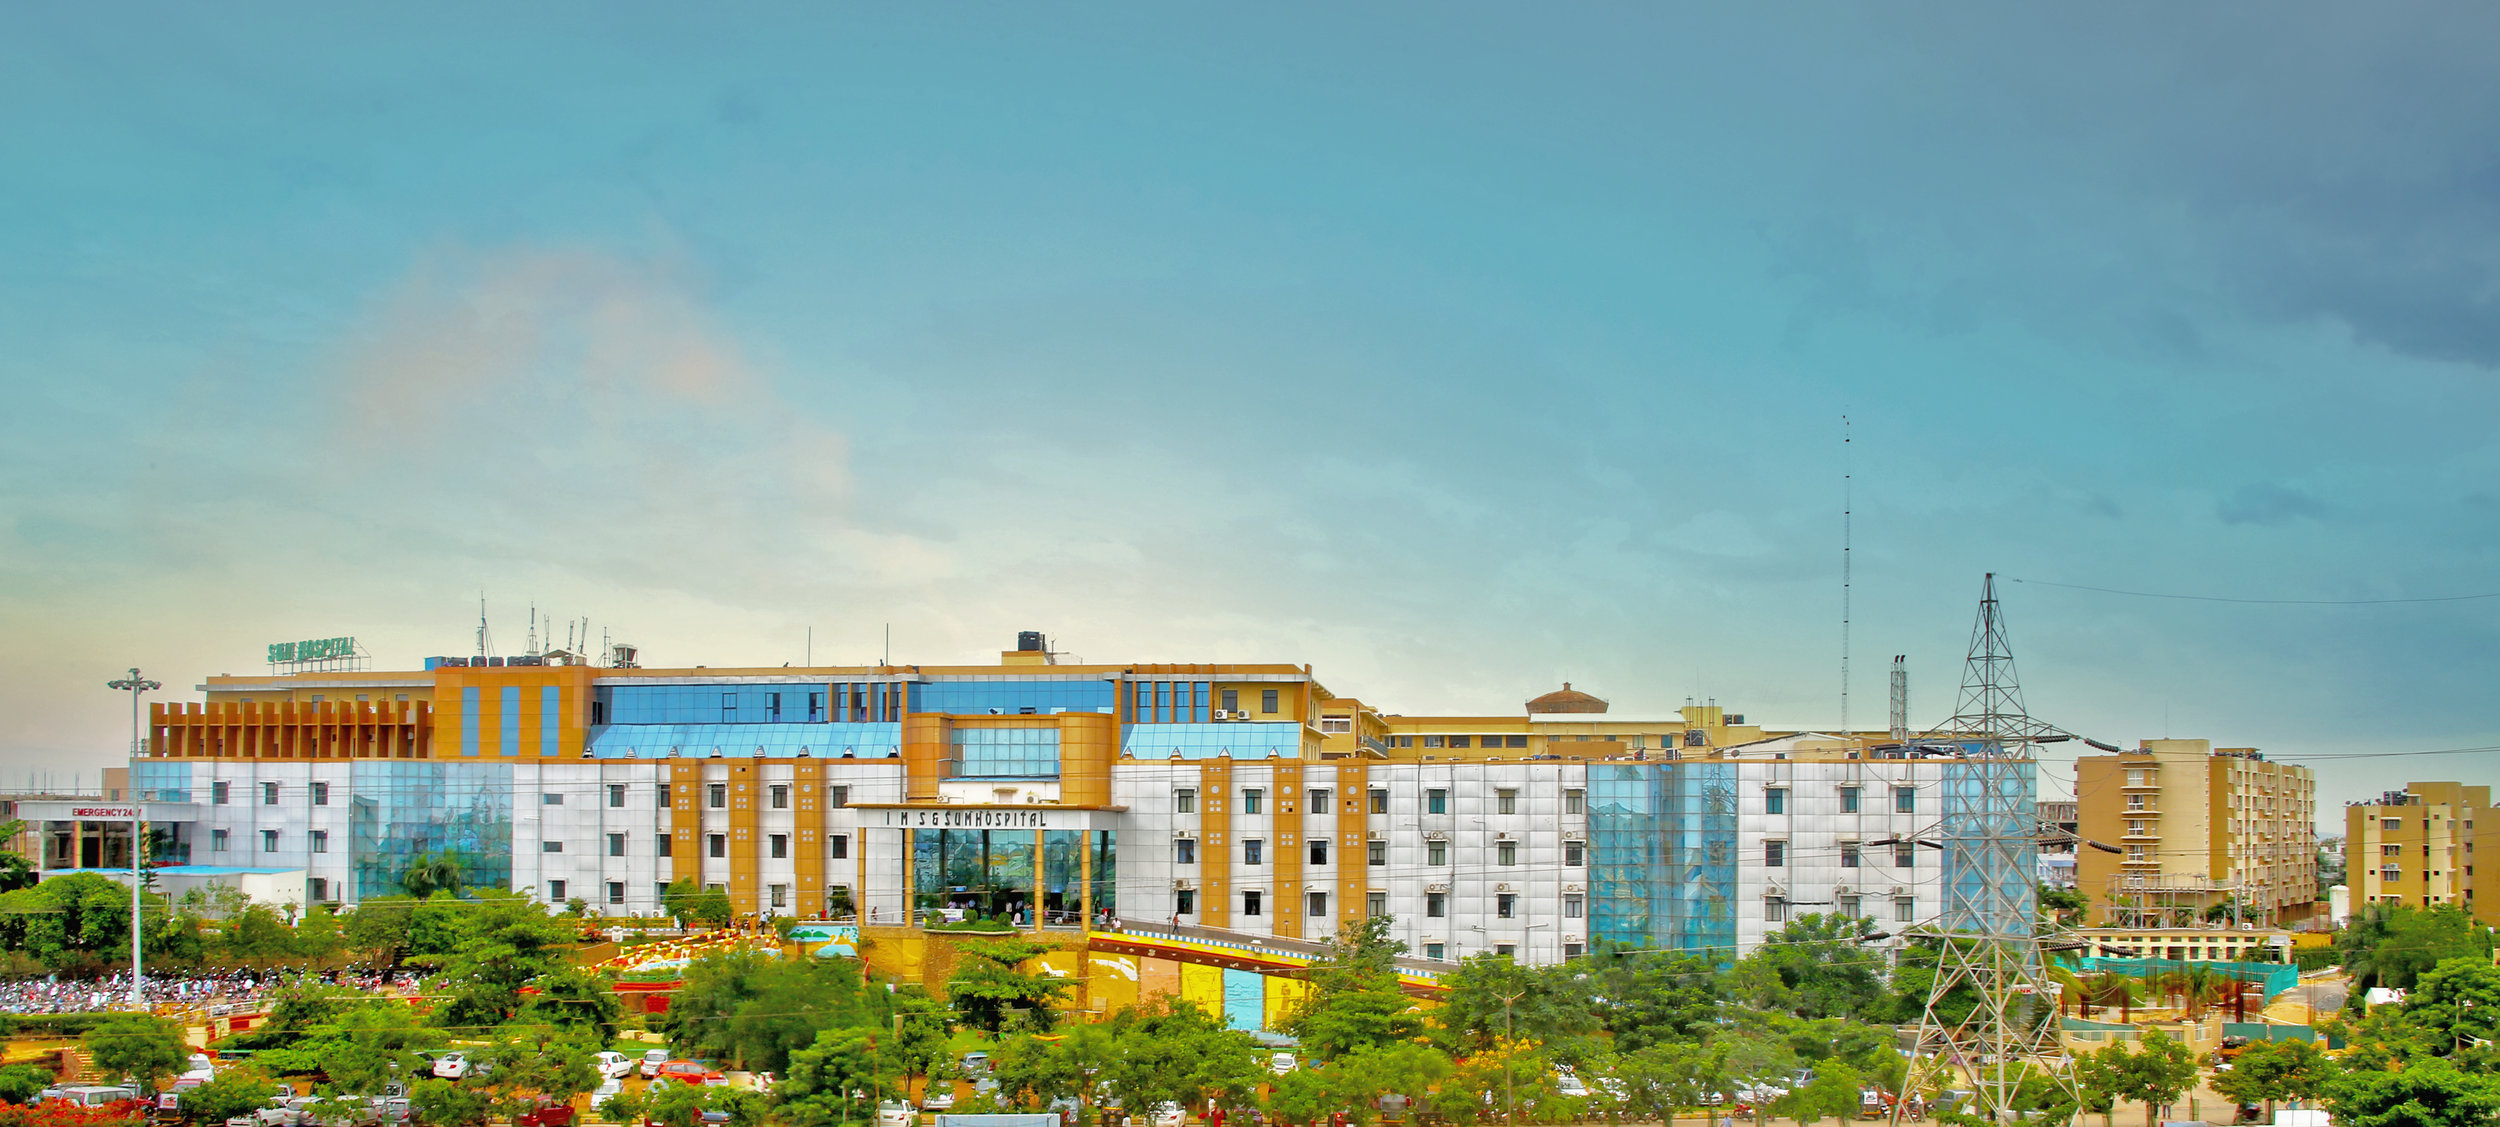 IMS & SUM Hospital - Institute of Medical Sciences and SUM Hospital